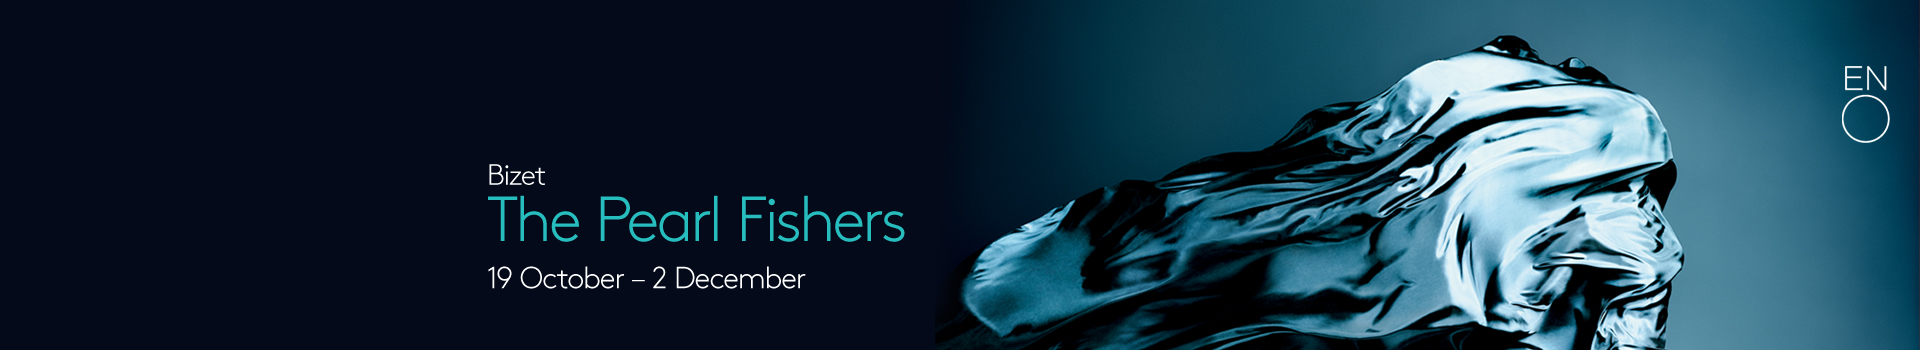 The Pearl Fishers banner image